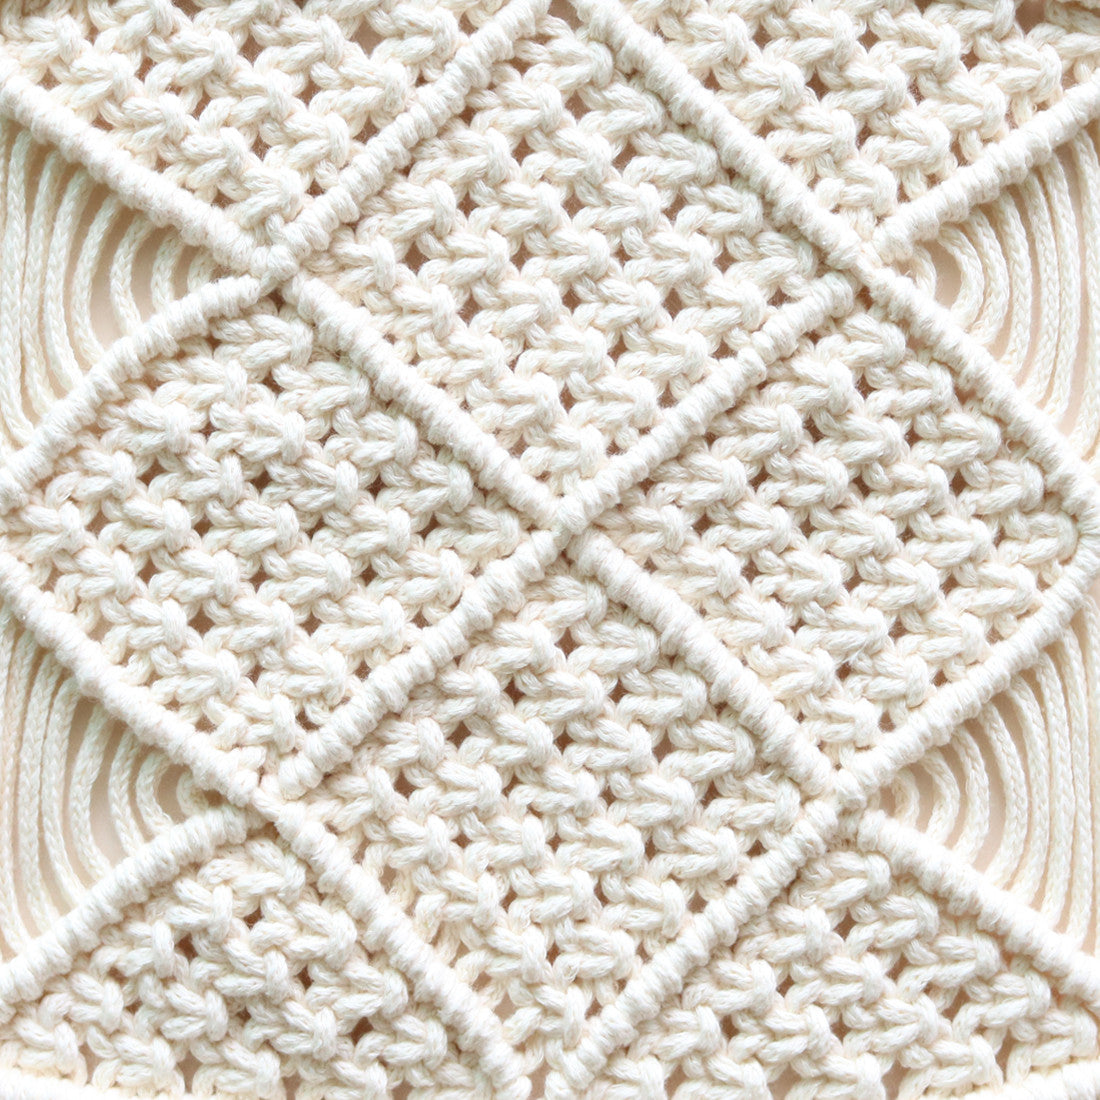 Macram Laptop Mat By Mei Kwee Chong Koel Magazine Square Knot Diagram 33rd Row Complete A Of Horizontal Double Half Hitch